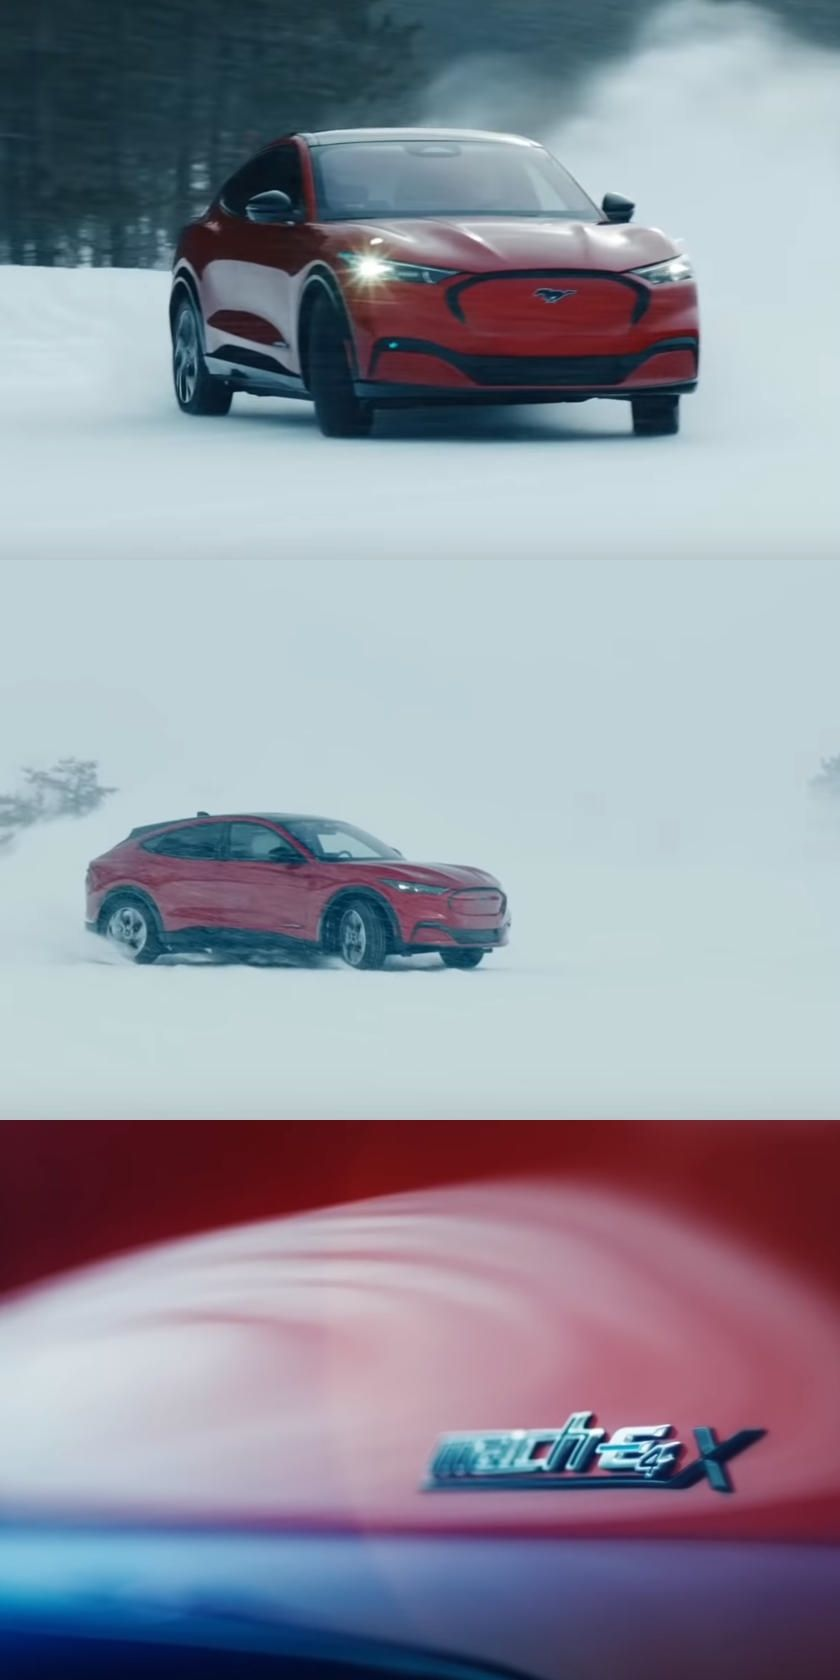 Watch Ford Mustang Mach E Drifting In The Snow In 2020 Ford Mustang Mustang Drifting